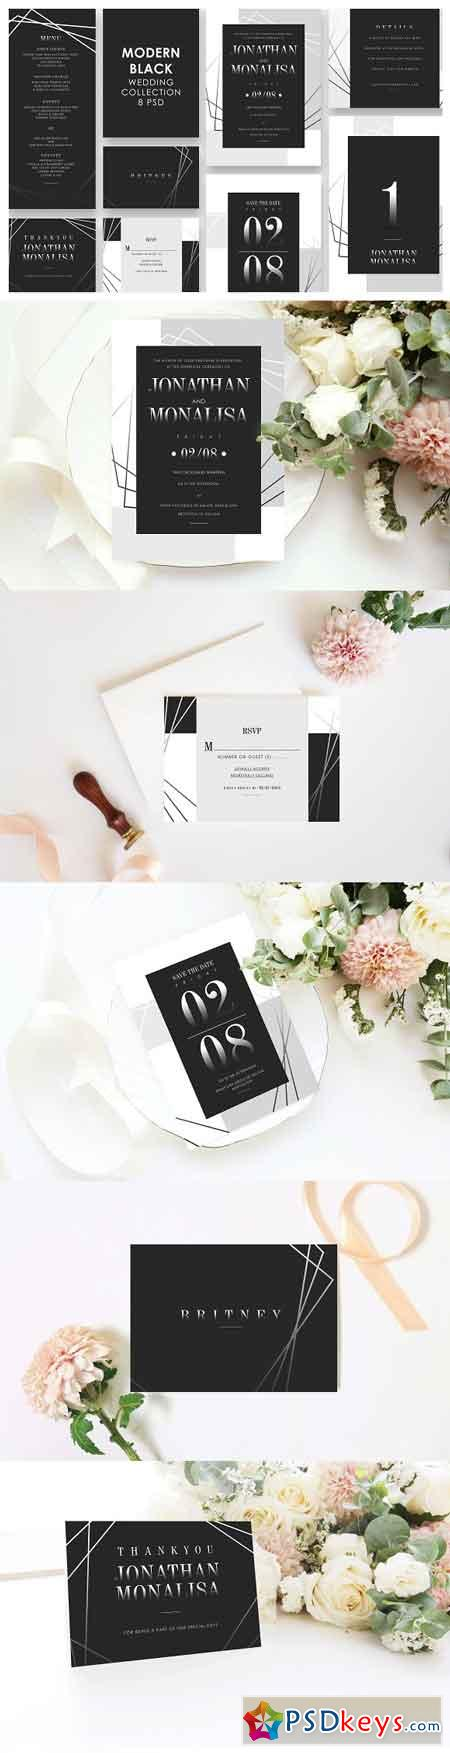 Modern Black Wedding Invitation Set 3298873